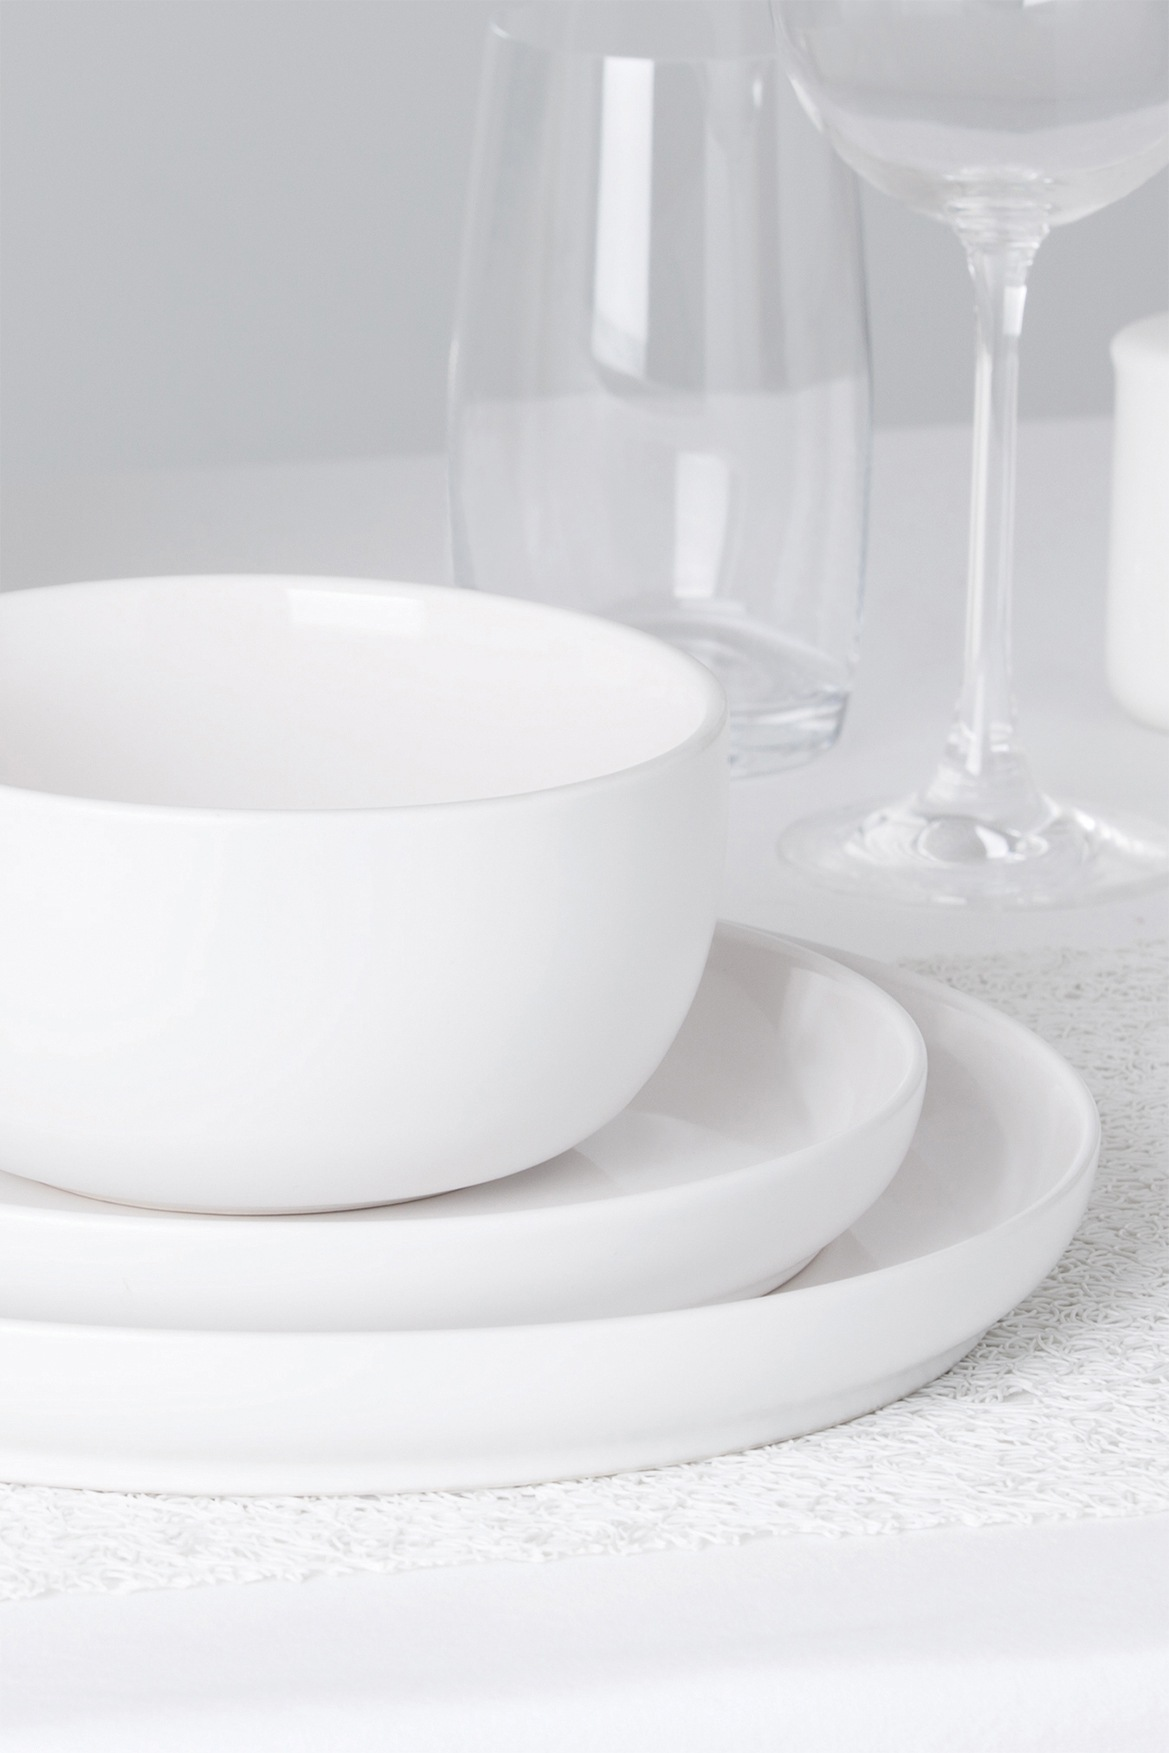 Myer Online - CategoryName. « » «» & Vue | Nest Stoneware High Coupe Dinner Plate 26cm - White | Myer Online